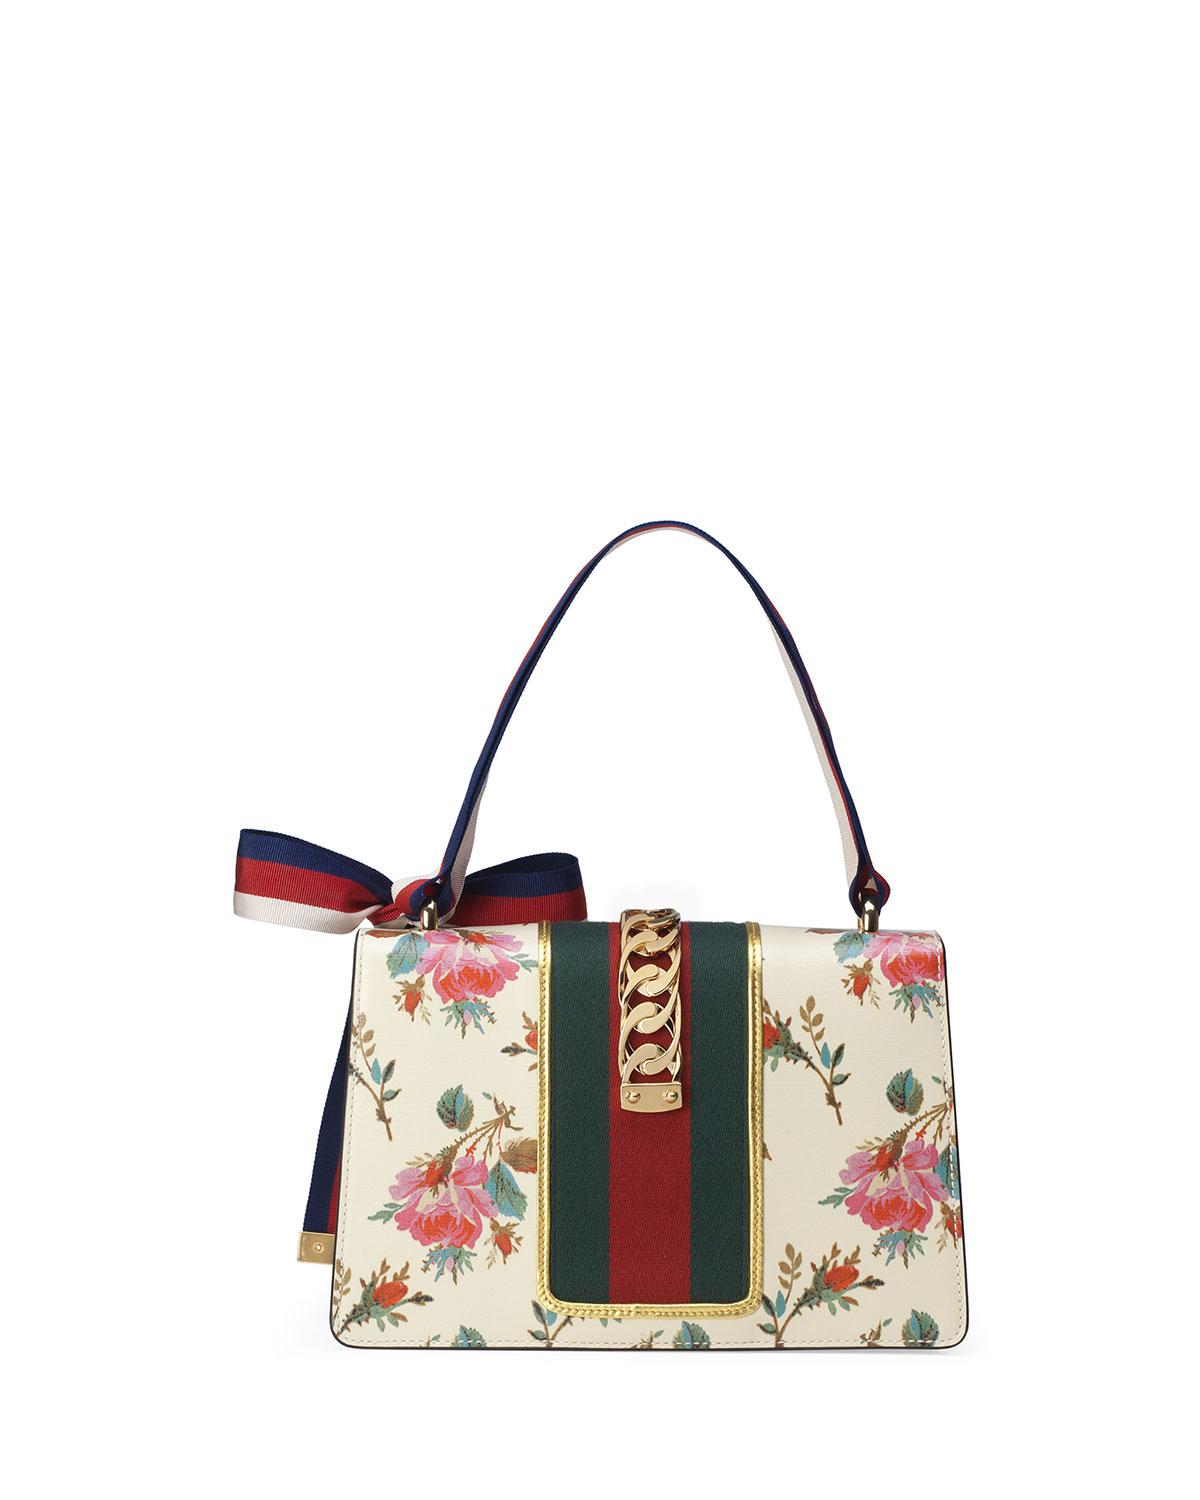 9ffc5fa94cd Lyst - Gucci Sylvie Small Rose Floral Leather Shoulder Bag in White